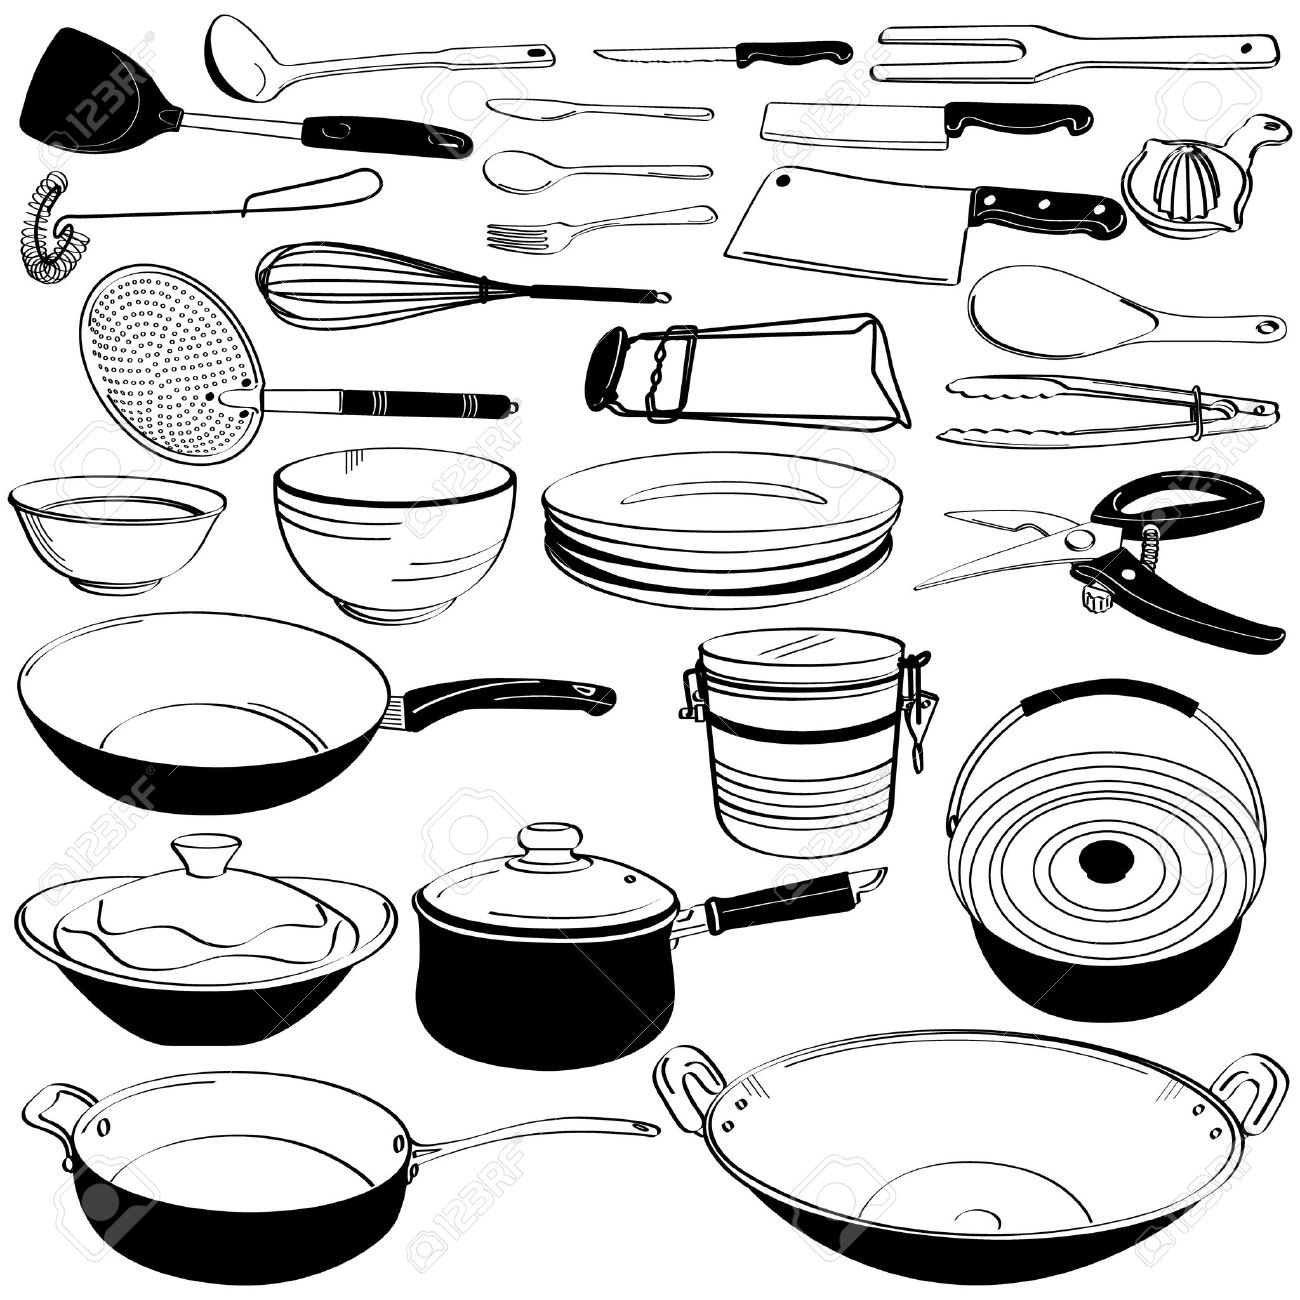 Kitchen equipment and their uses - Kitchen Tool Utensil Equipment Doodle Drawing Sketch Stock Vector 11102683